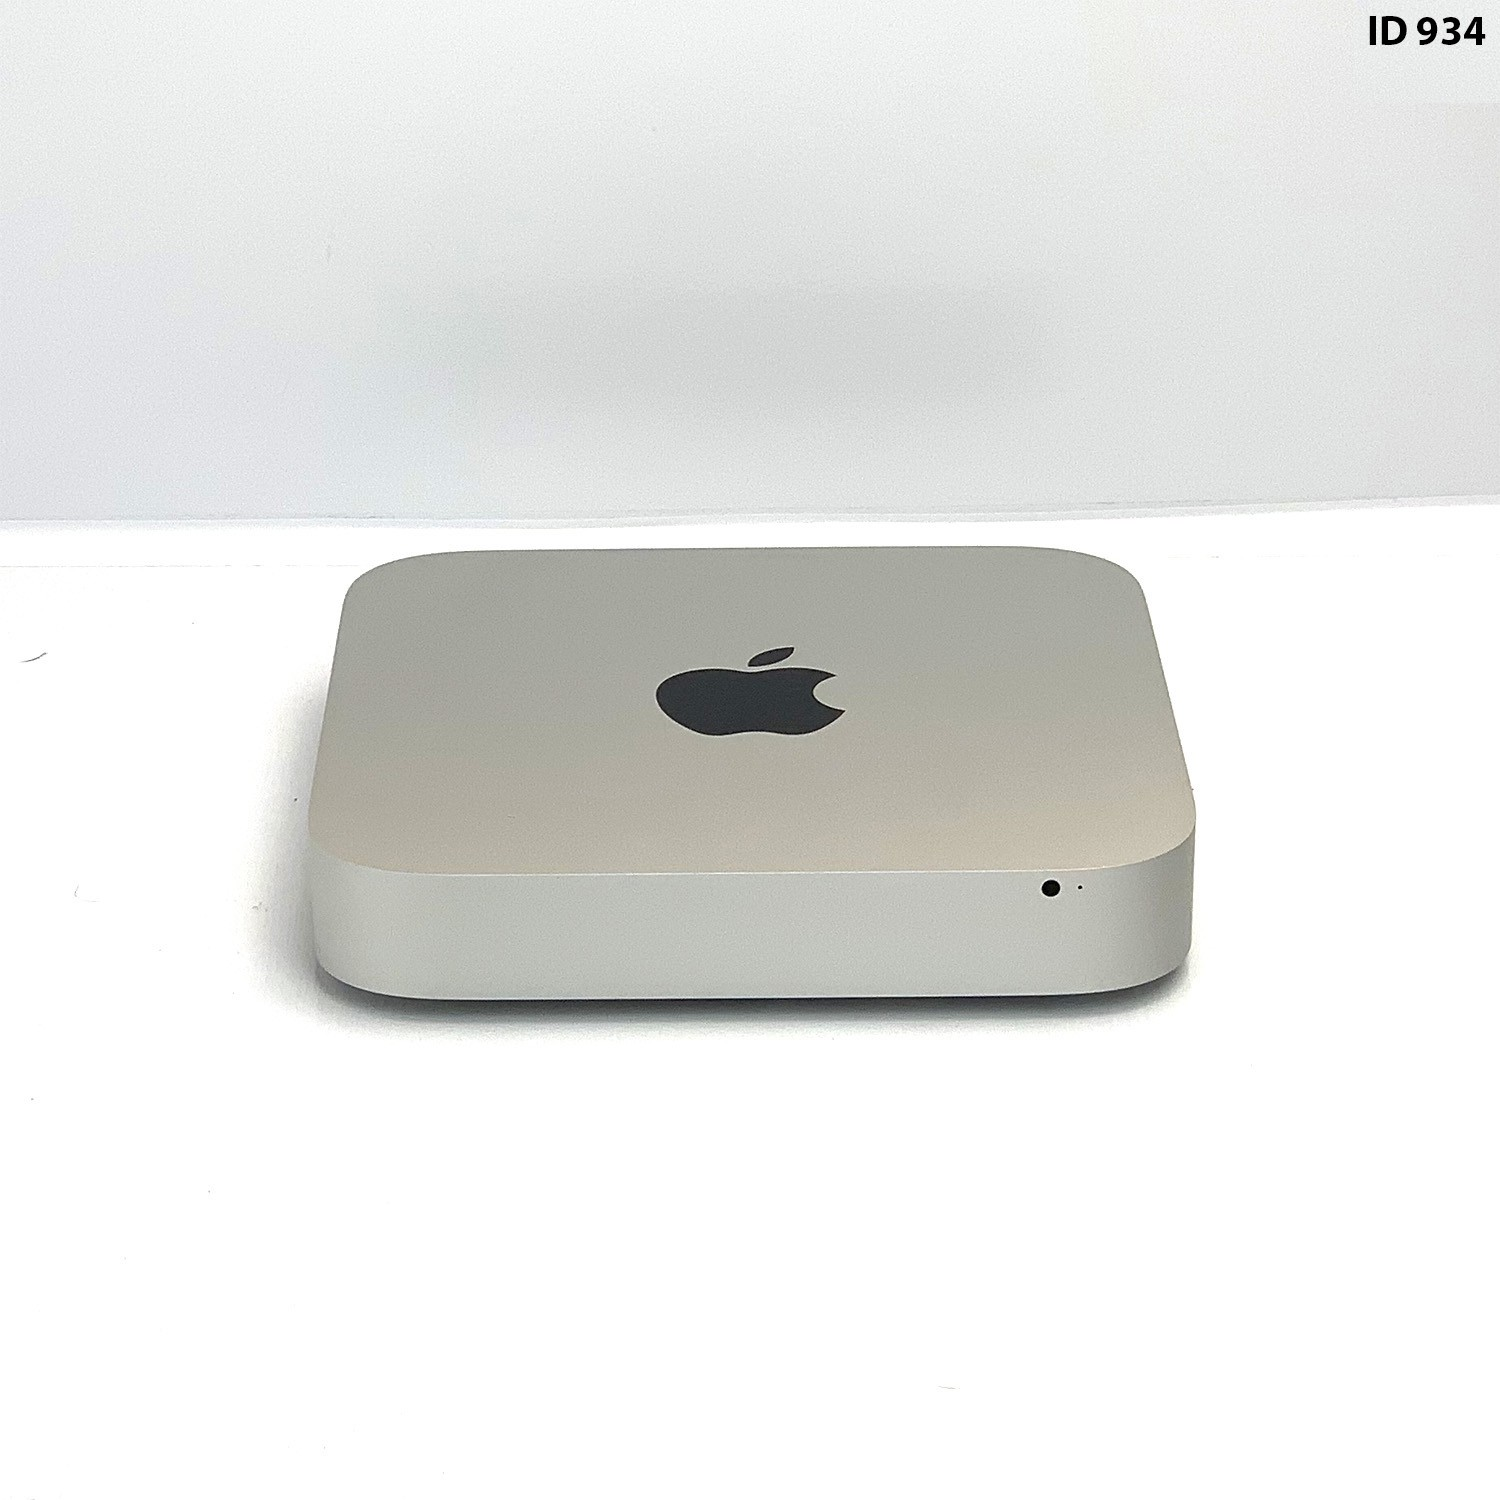 Mac Mini i5 2.8Ghz 8GB 512GB SSD MGEQ2LL/A Seminovo